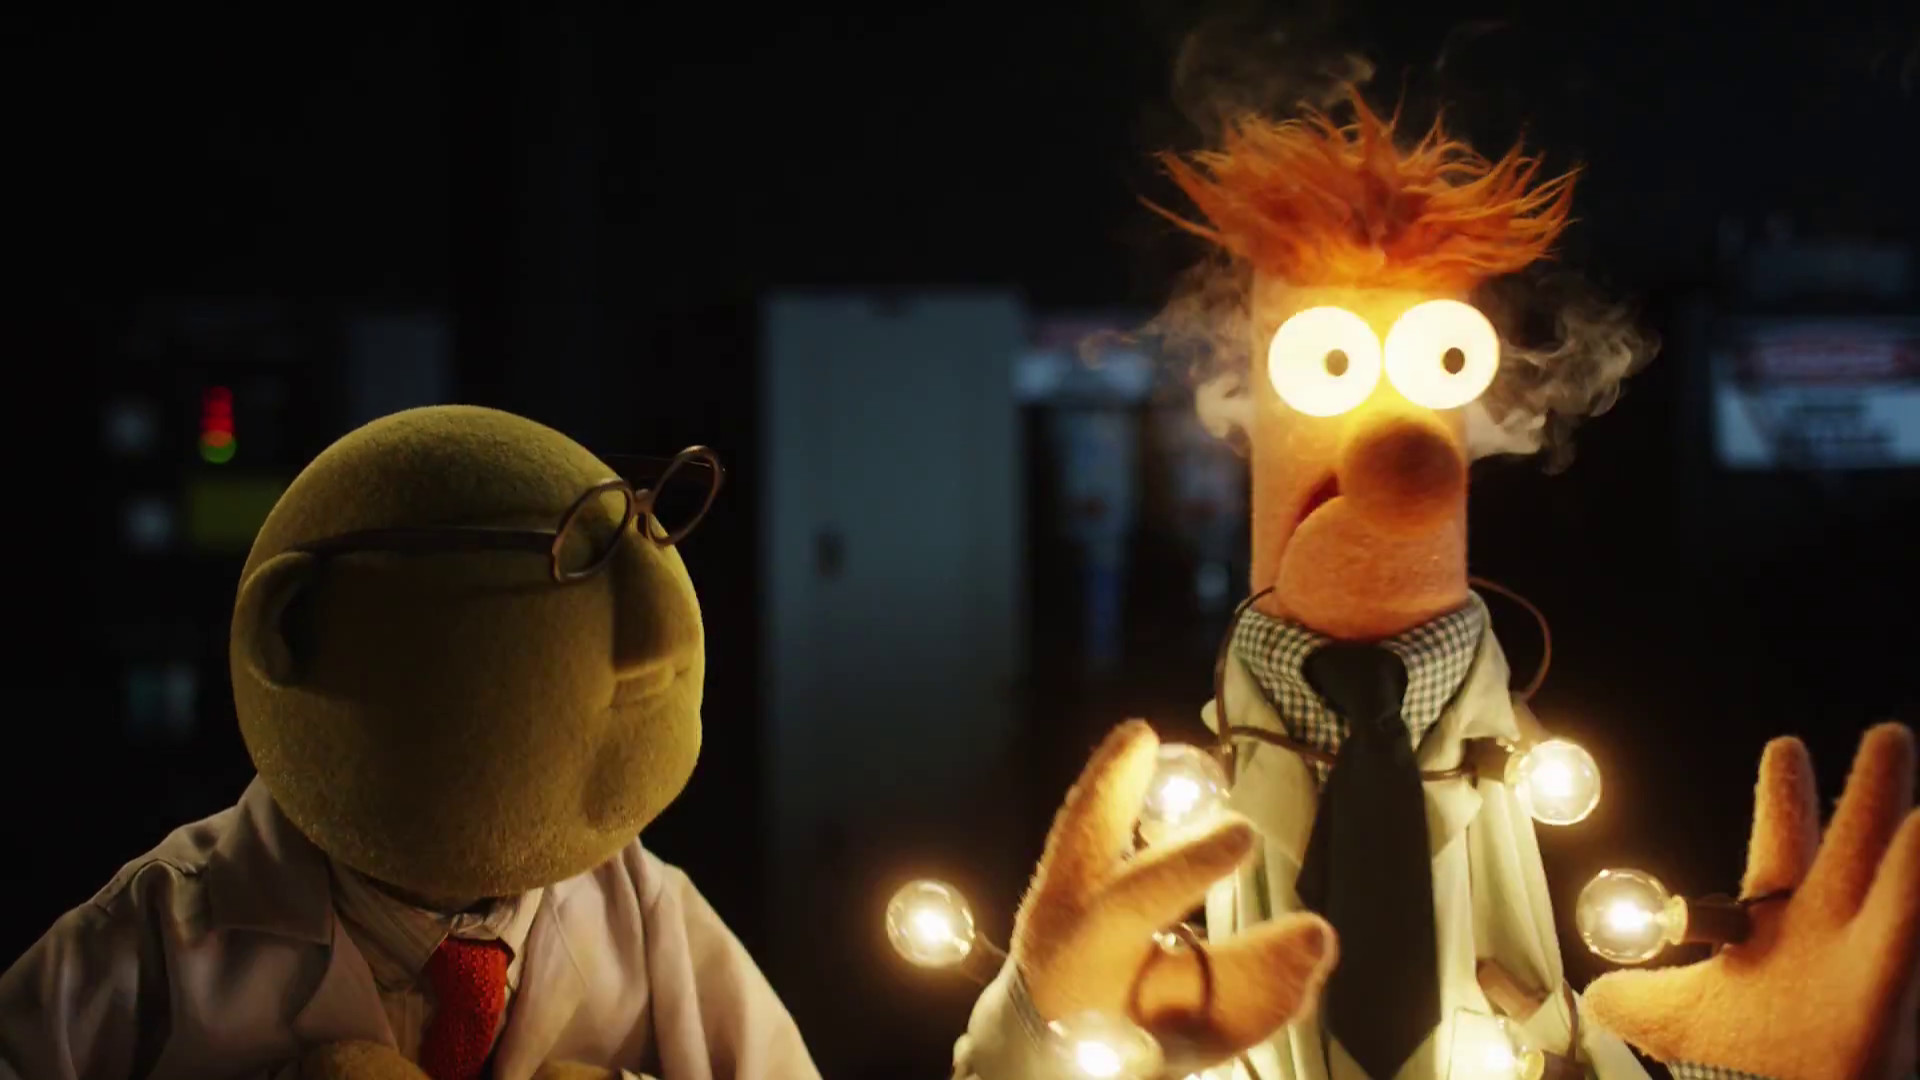 Beaker Muppets Wallpaper ·①